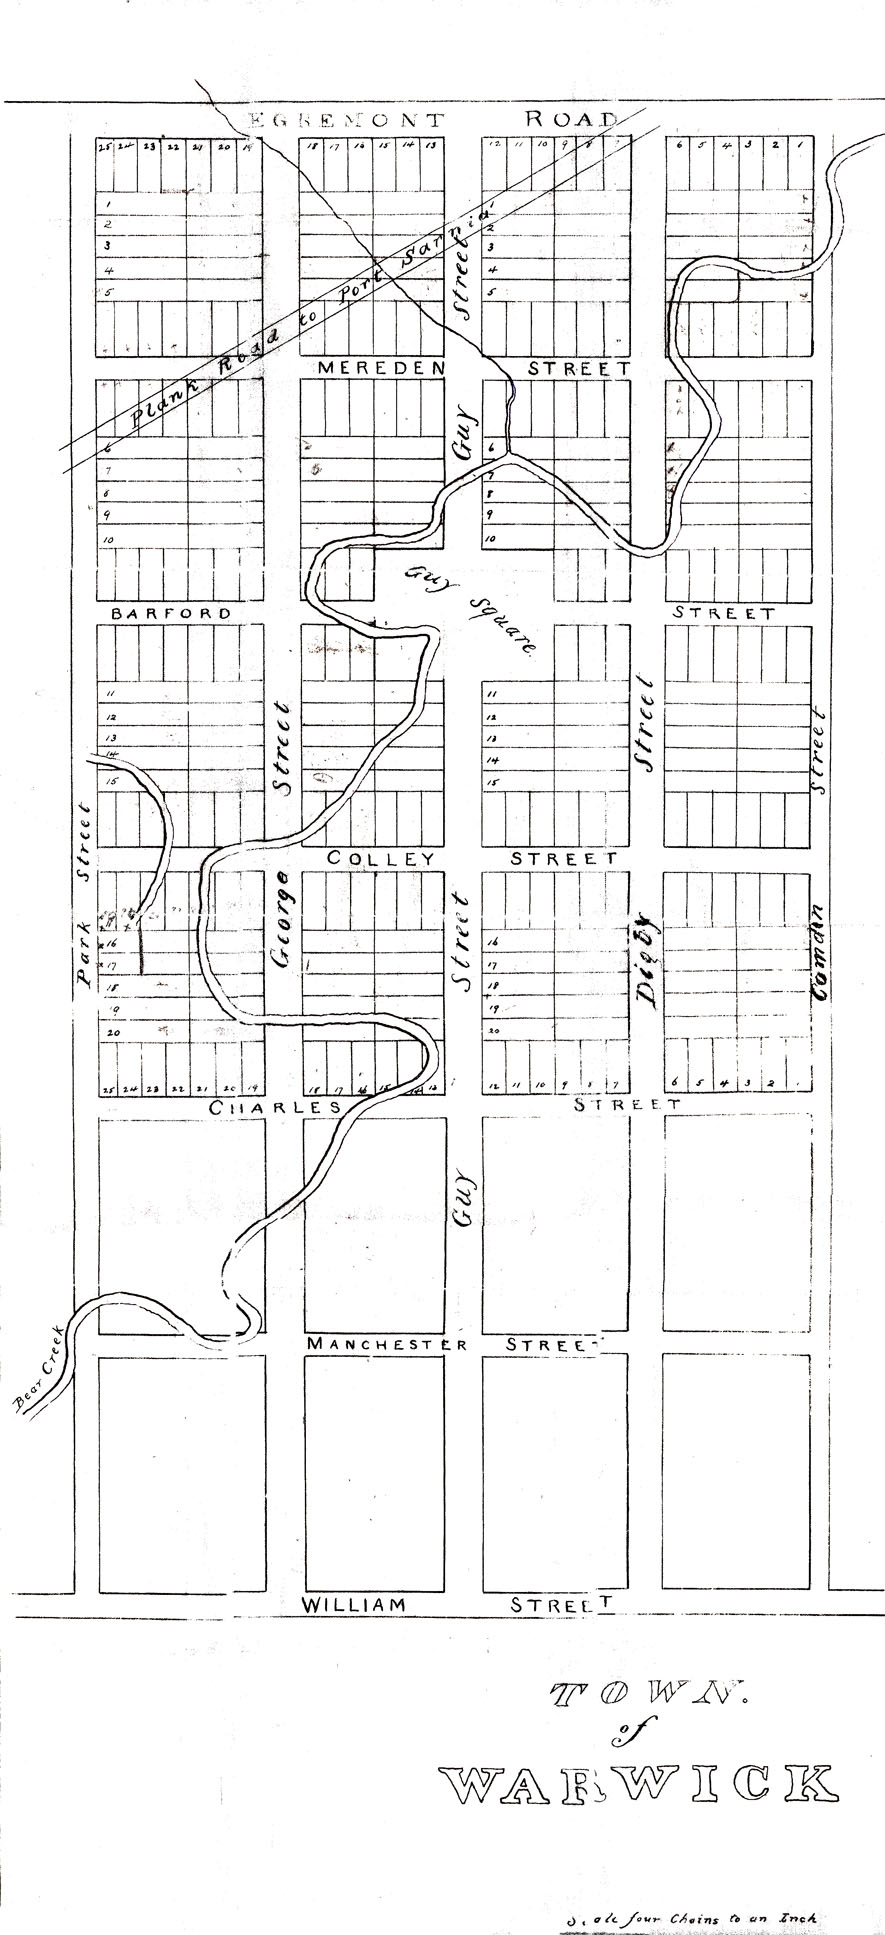 Warwick Village survey, c. 1834: Warwick Village was laid out as a town south of the Egremont Rd. This map also shows the Plank Rd. to Port Sarnia, established in 1846 to connect Warwick to Sarnia. courtesy P Evans